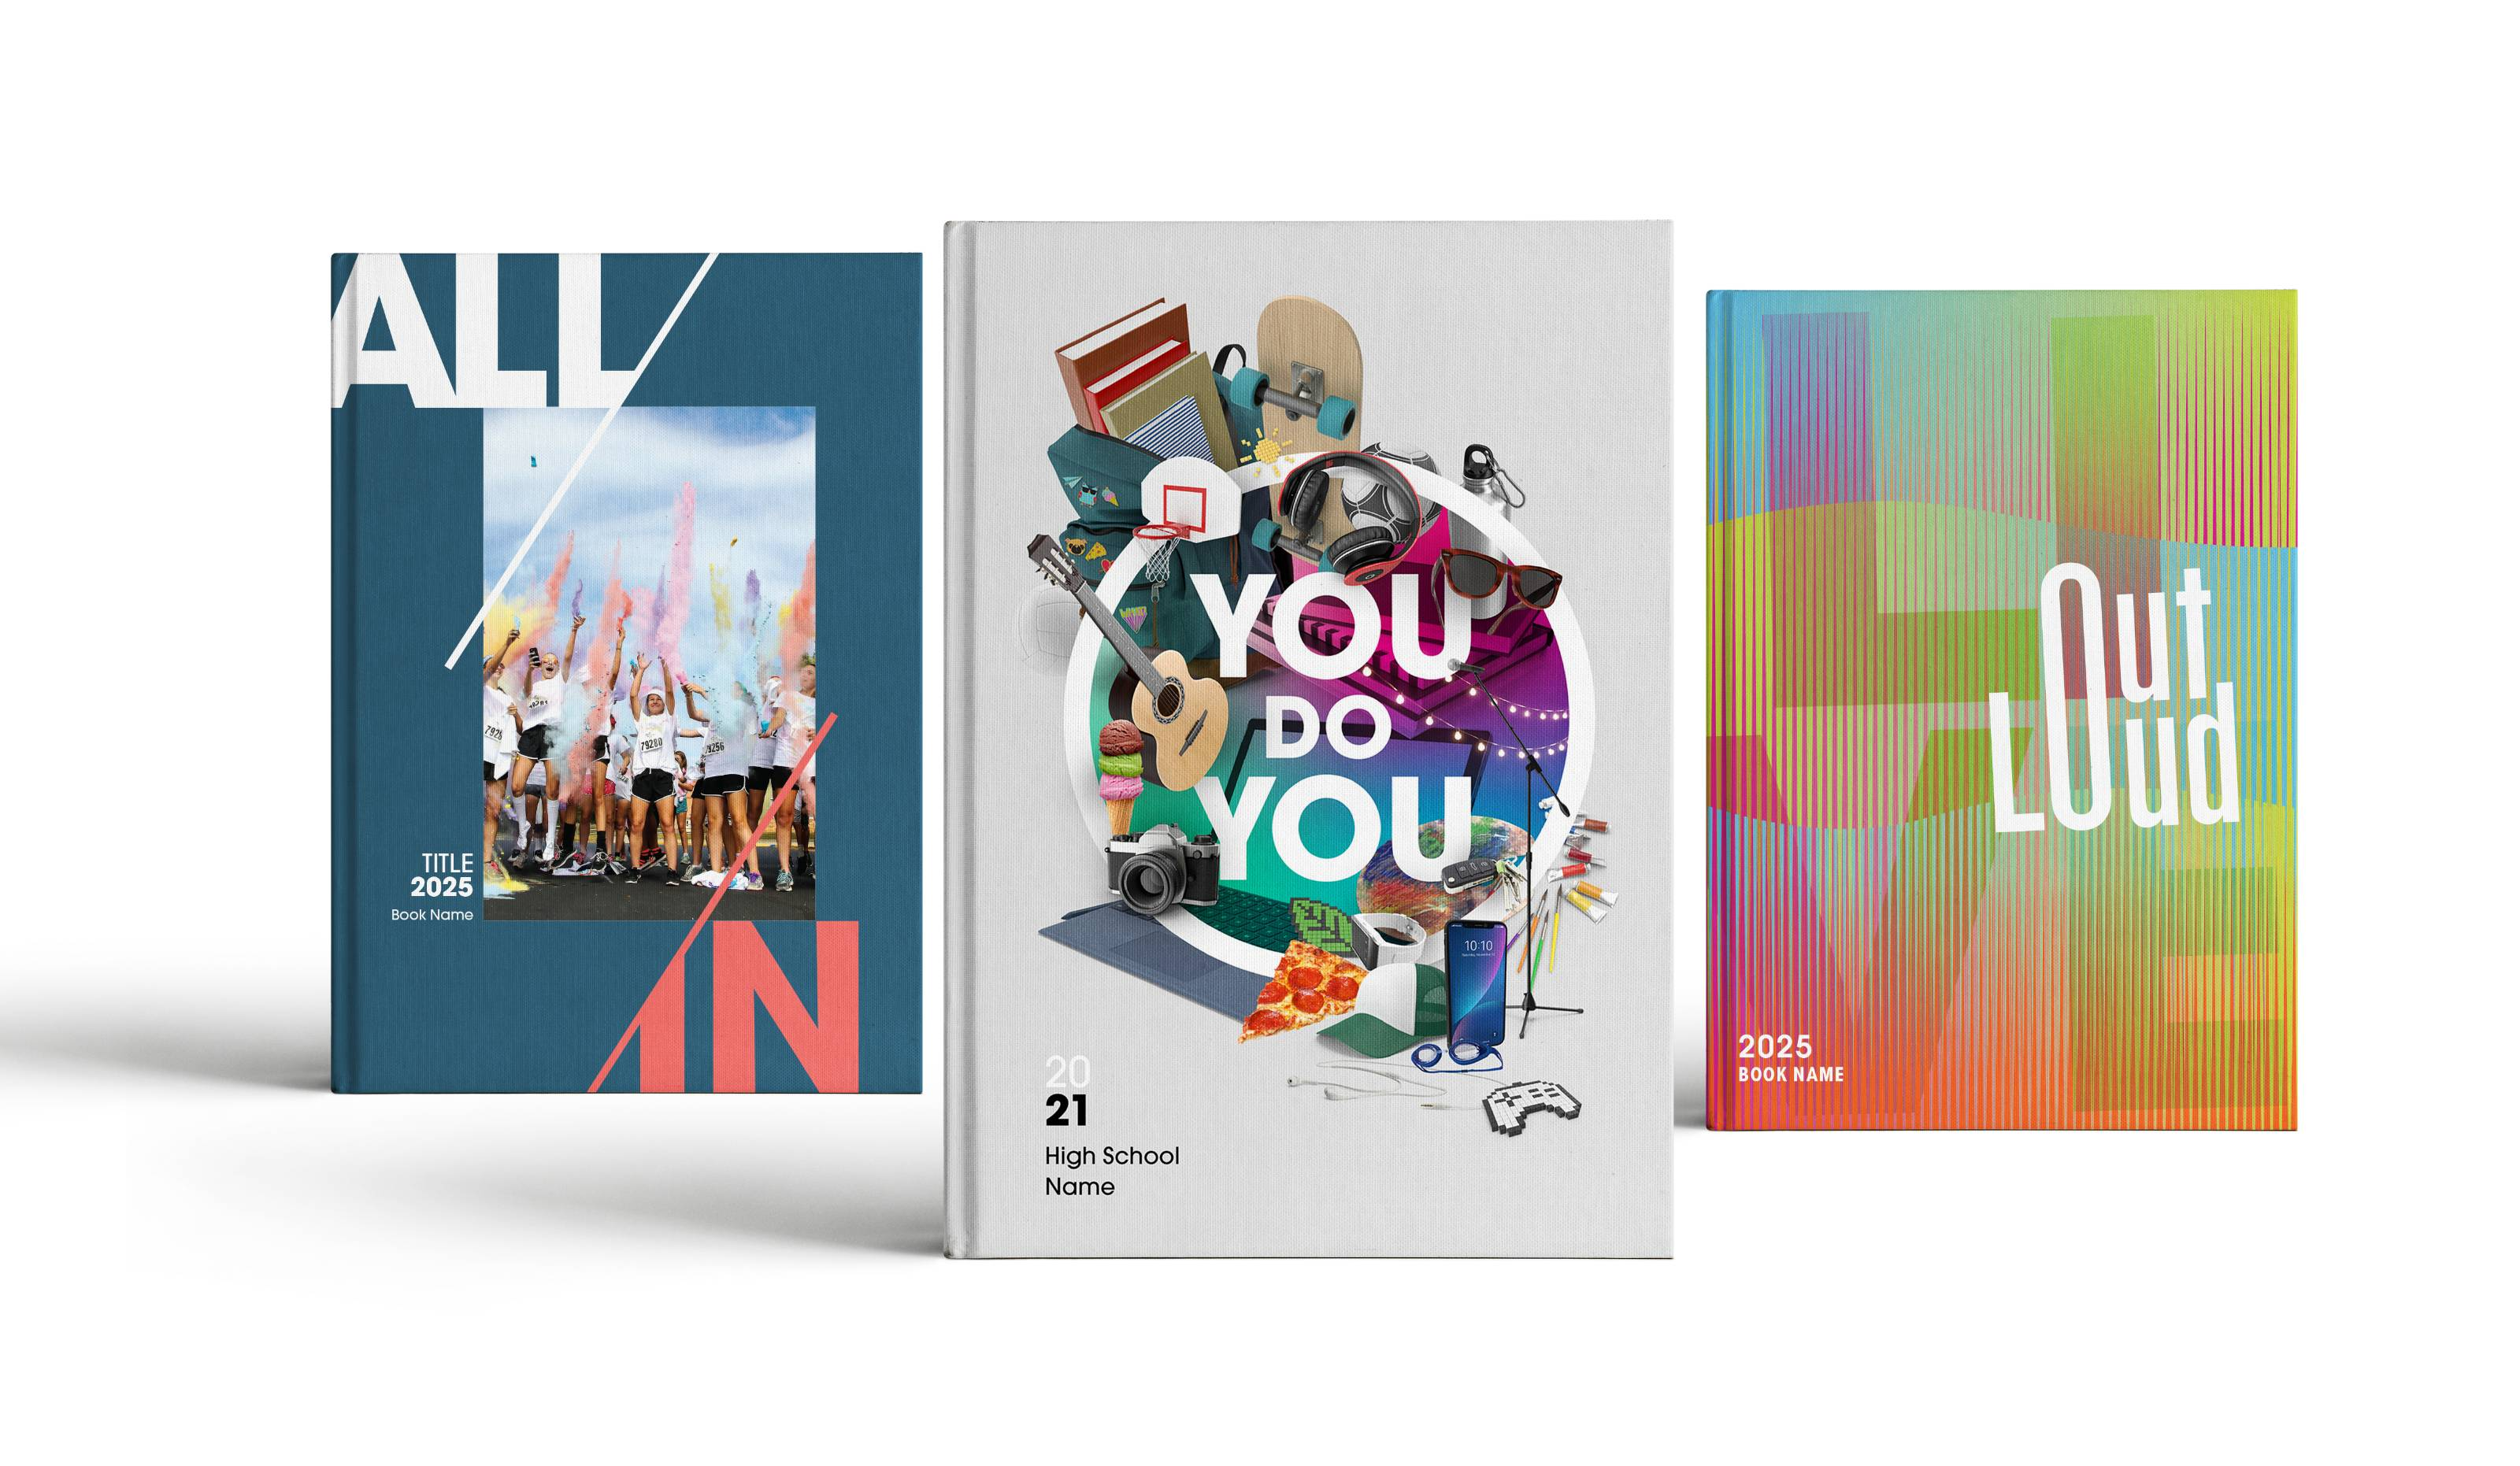 3 Cover designs mocked up